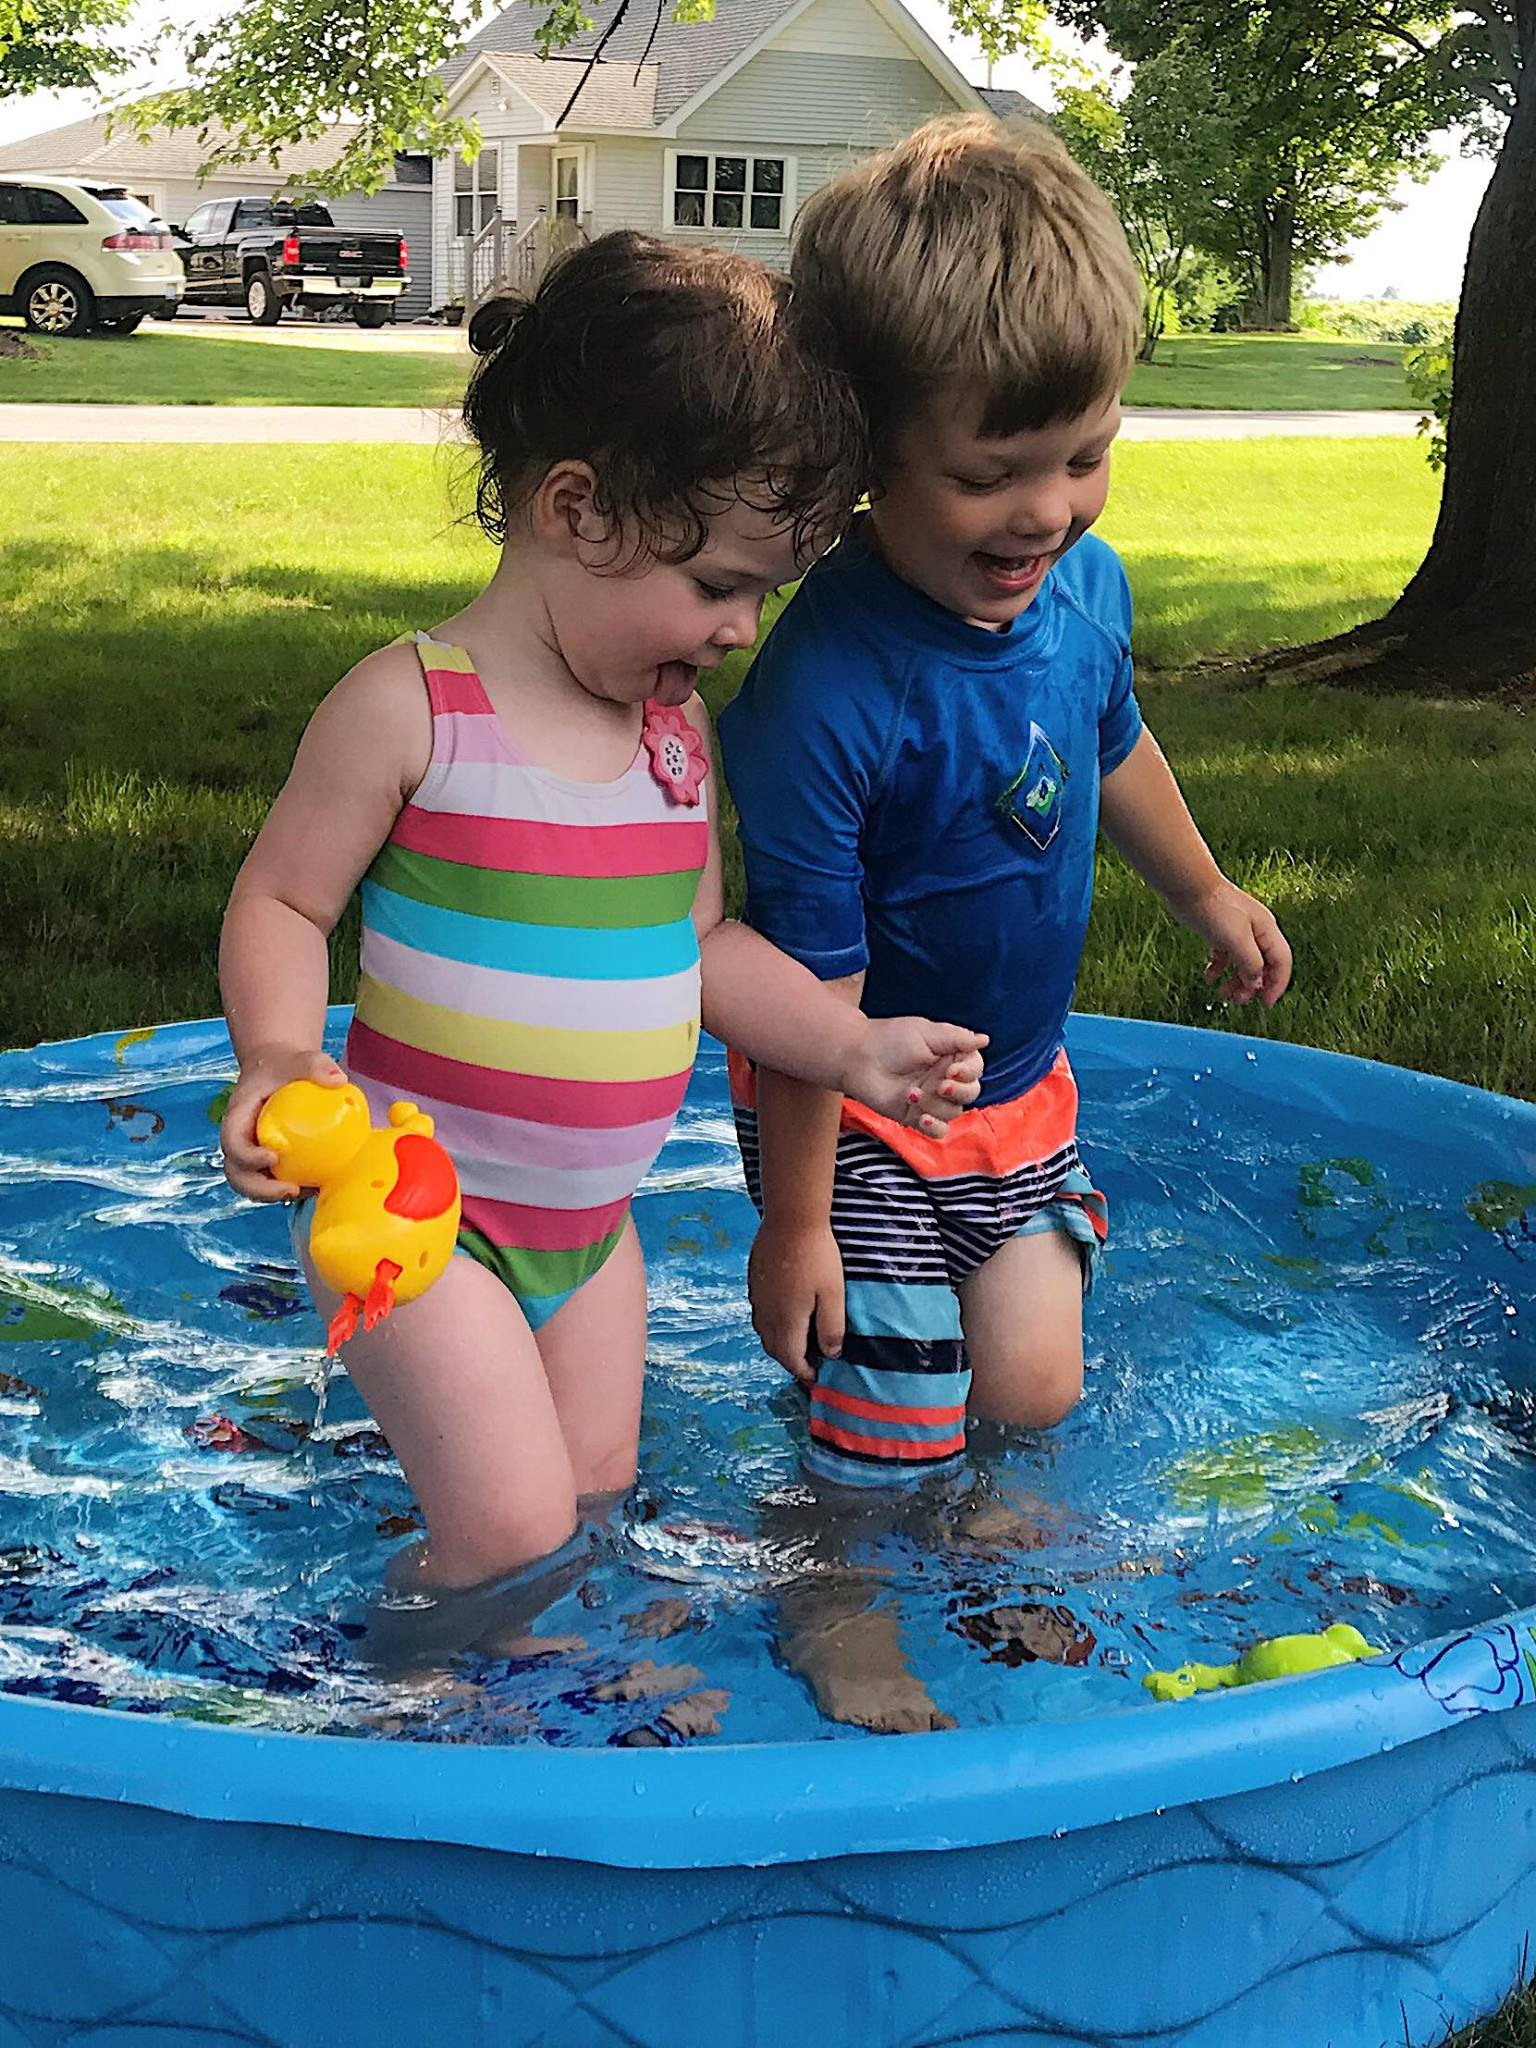 4th of July with her second cousin, Silas